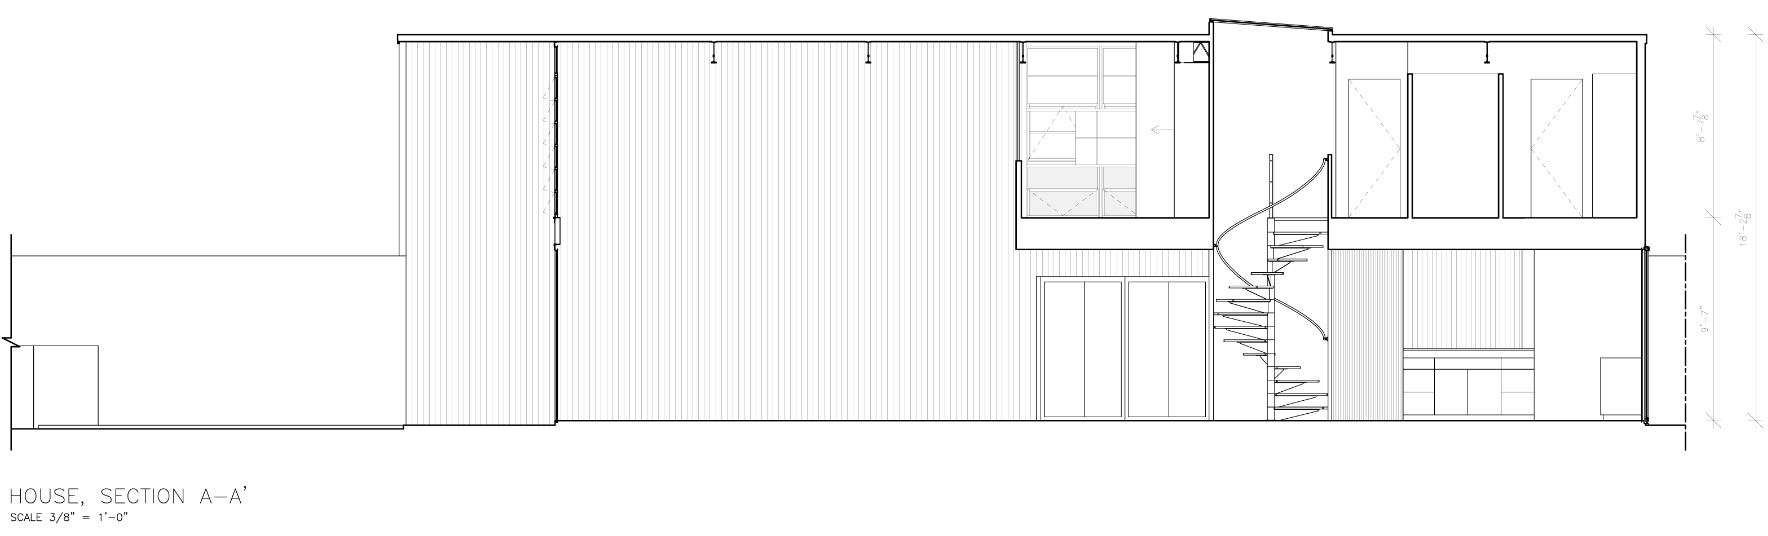 It shows Eames house, House, Section A-A' provided by Eames House as-built drawing, public domain